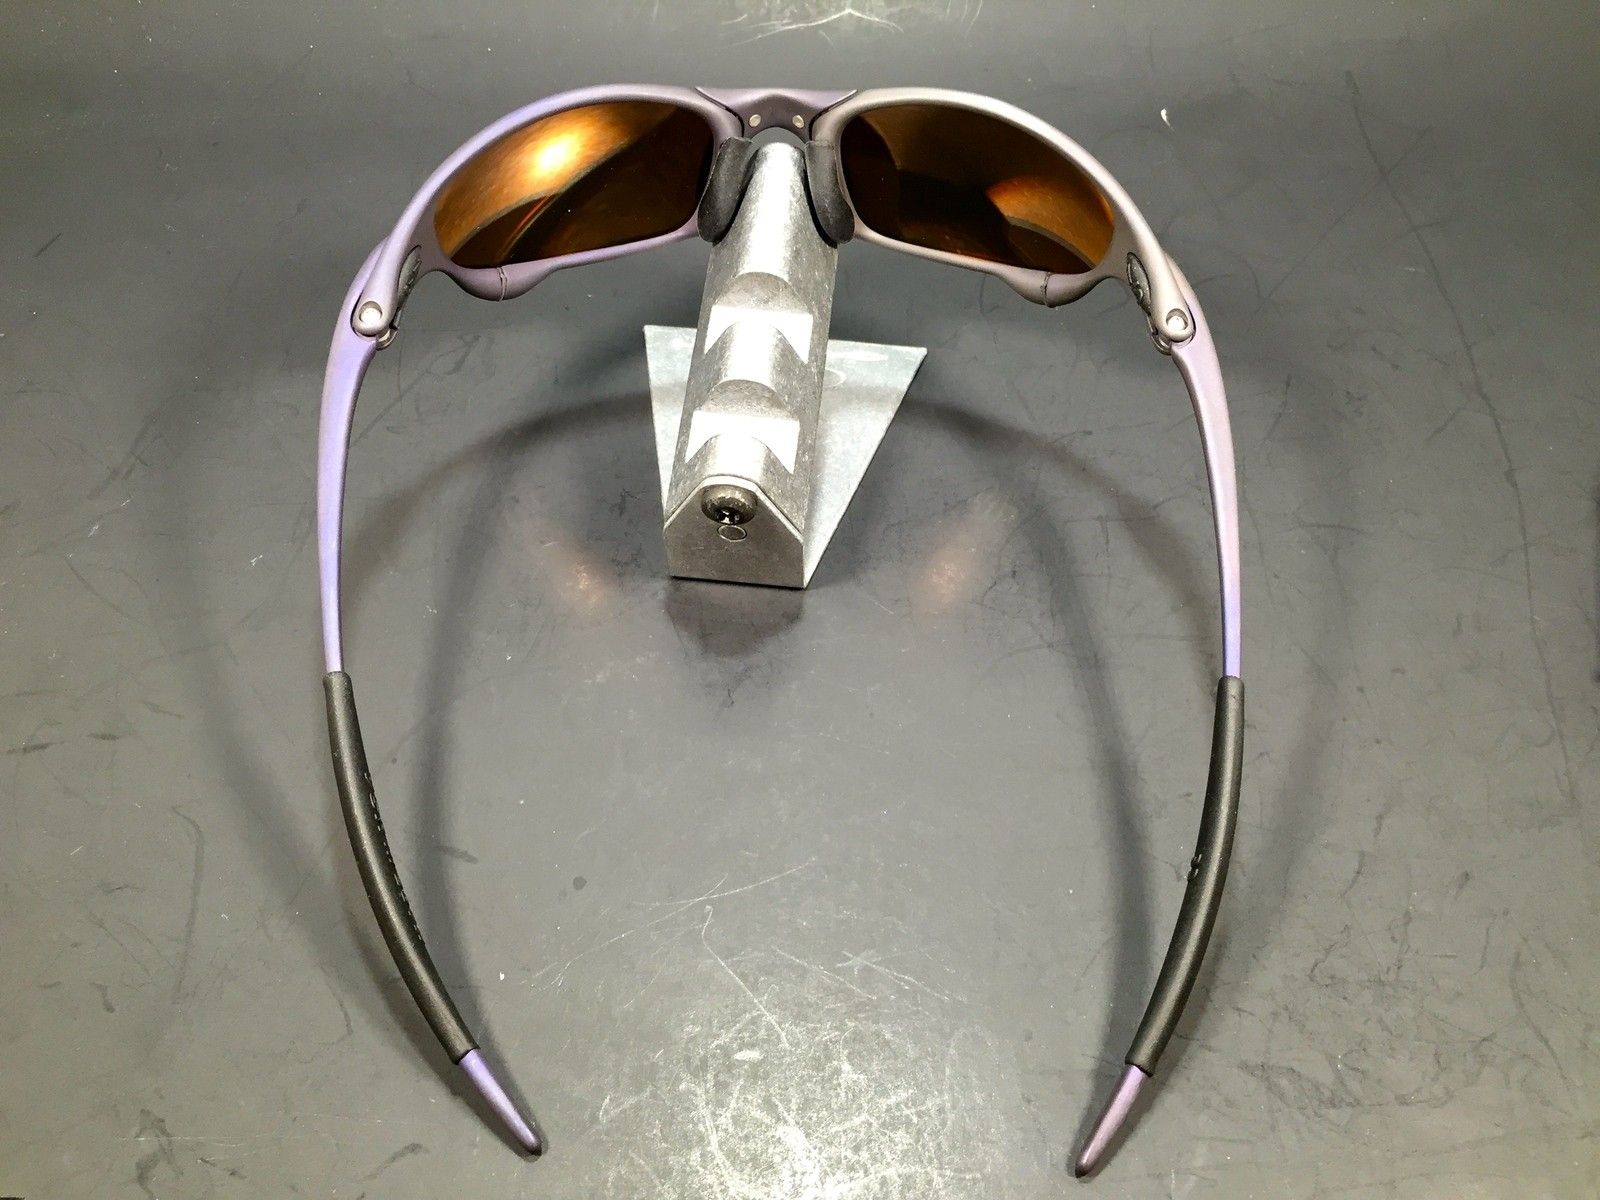 Anodized Purple X Metal Juliet w/ Fire Lenses $299 - IMG_2159.JPG